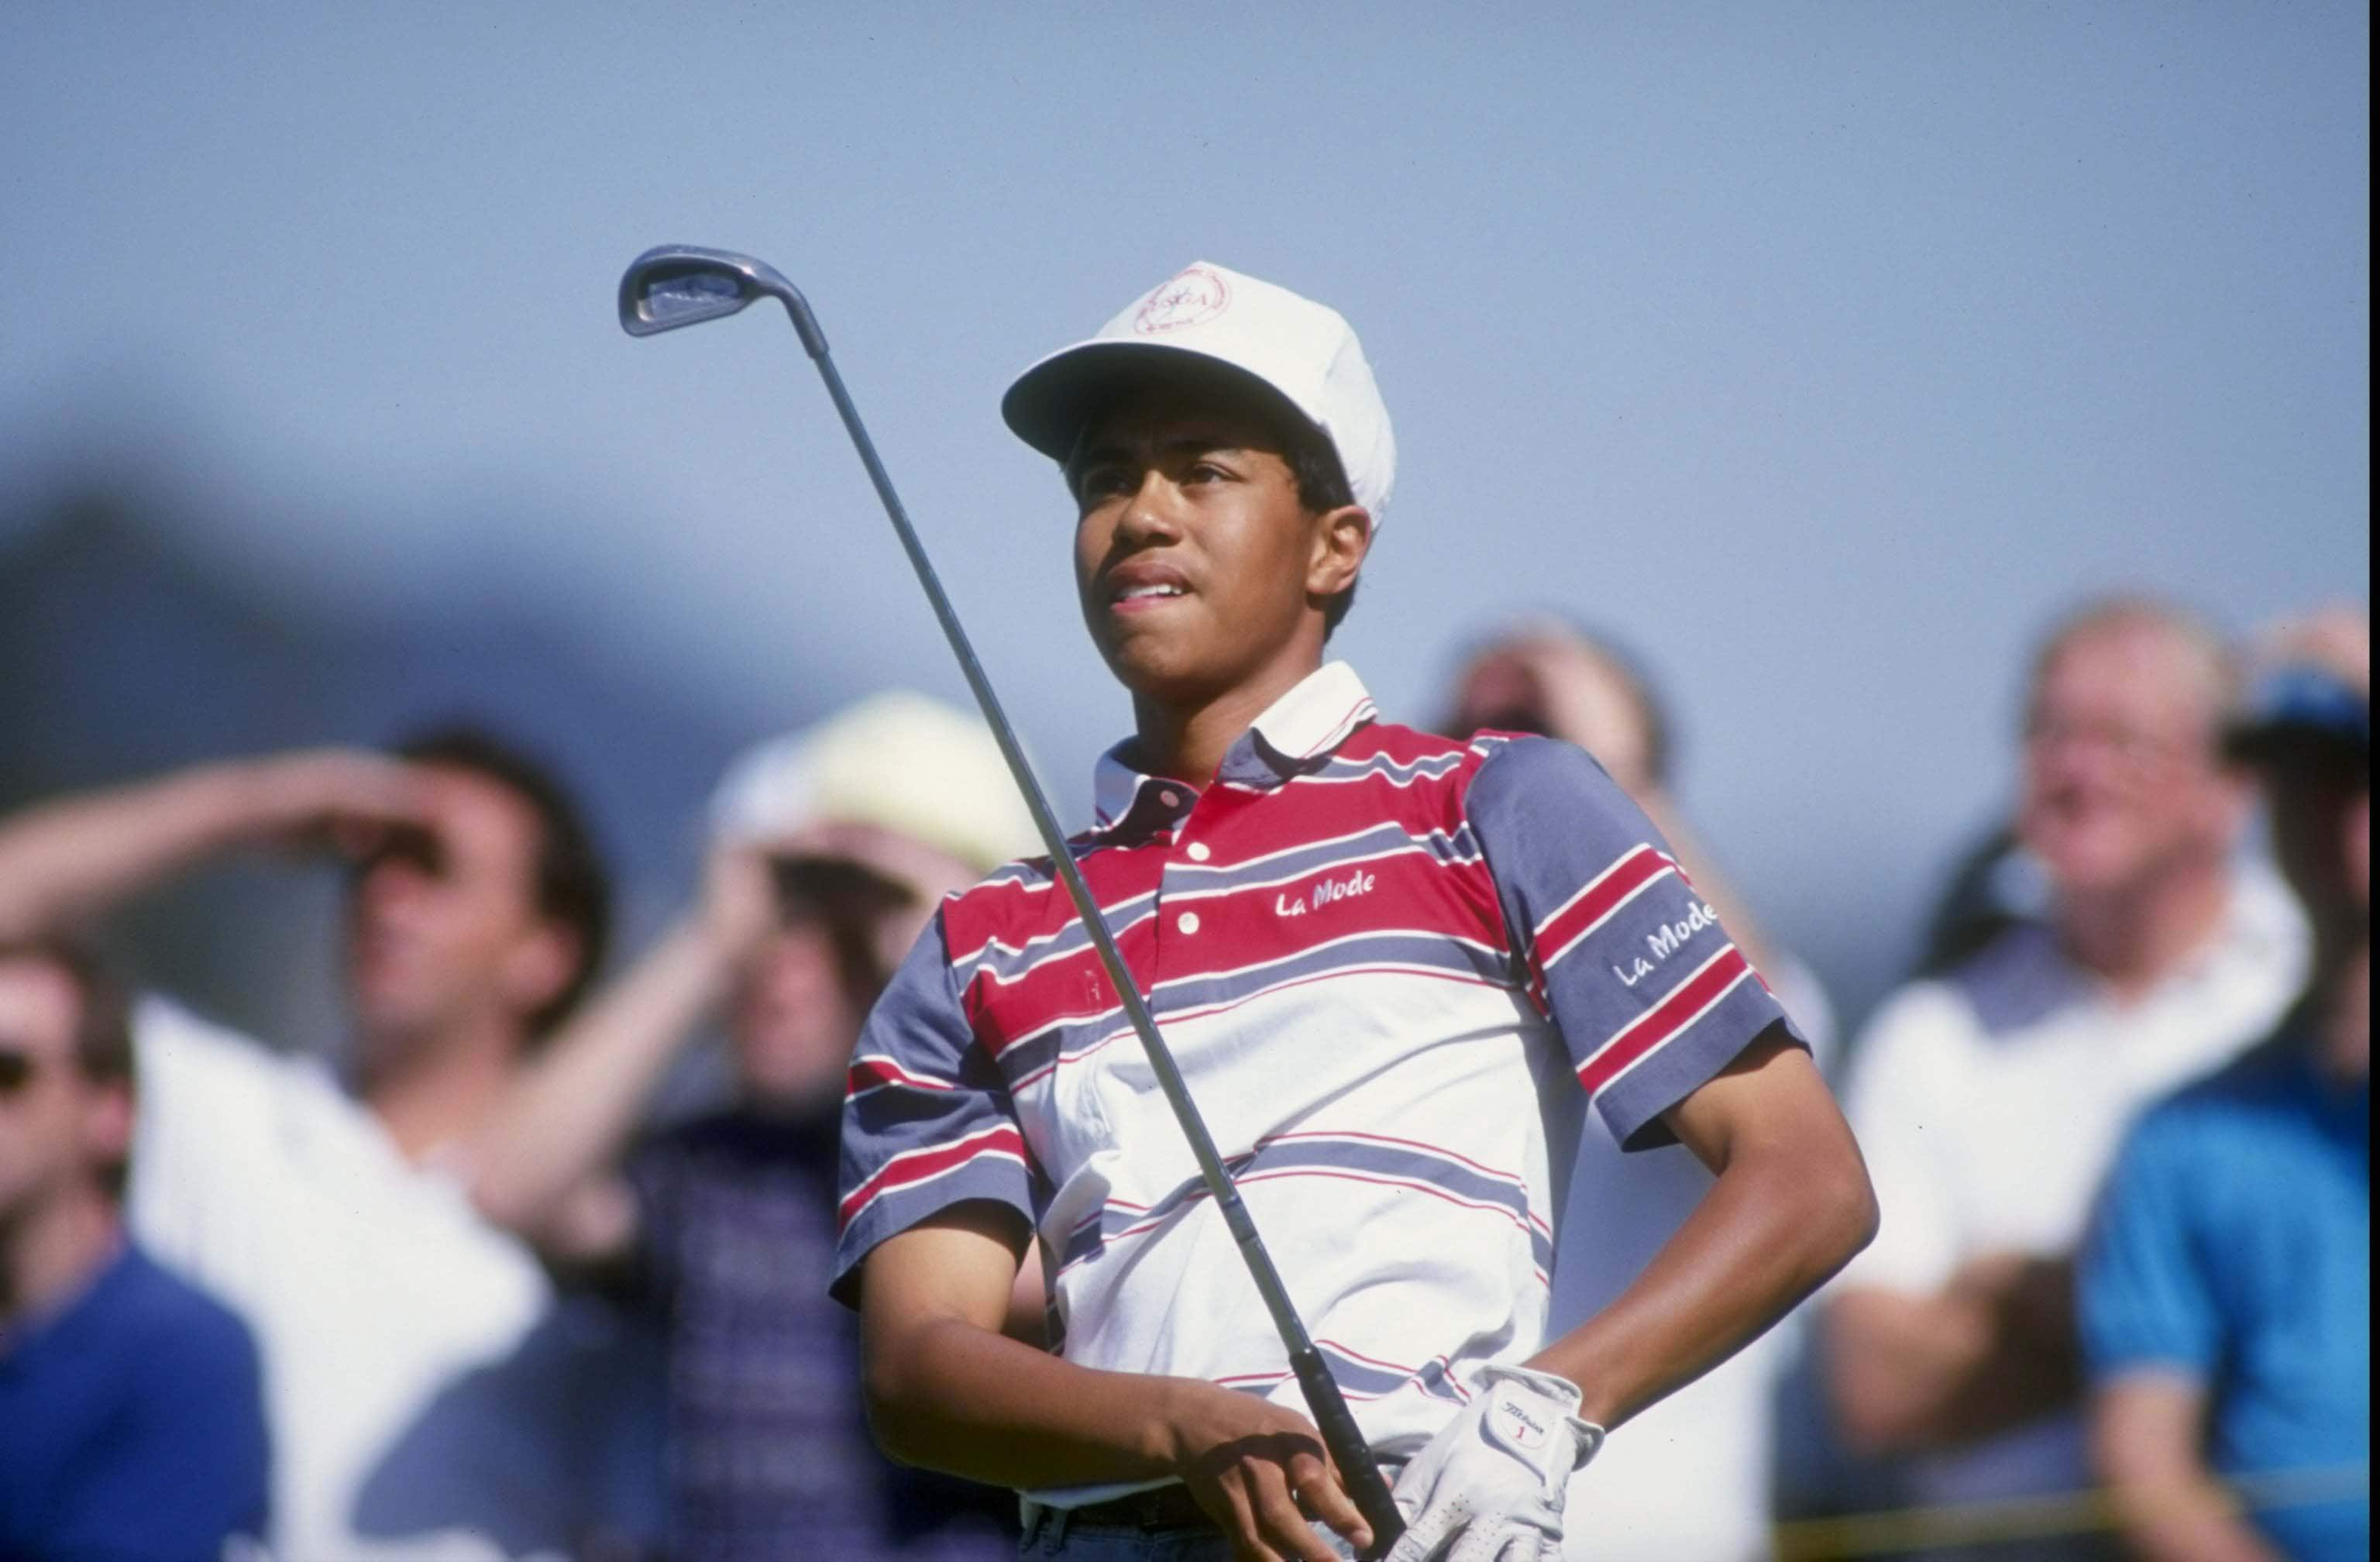 And then there was this 16-year-old kid in 1992